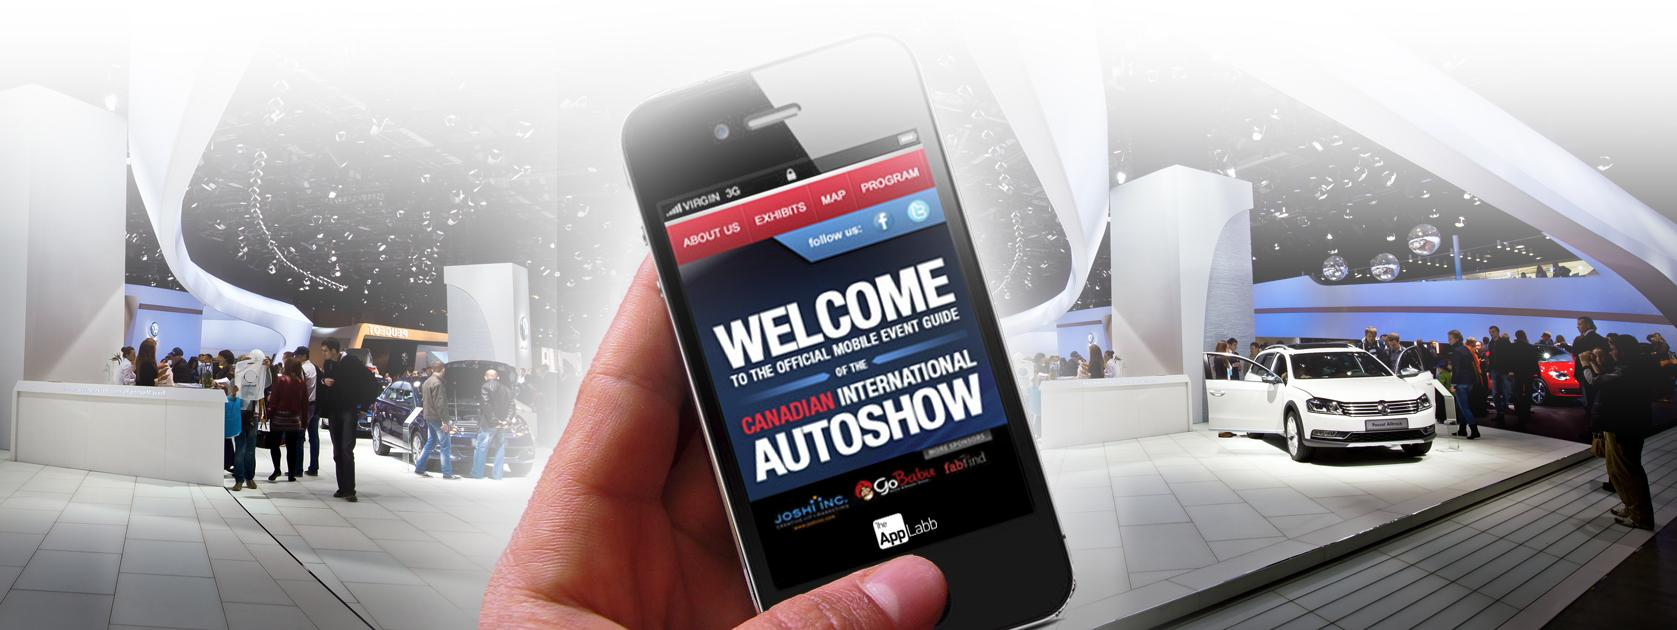 CASE STUDIES MOBILE APP DEVELOPMENT Mobile App The Auto Show s aim was to engage with the audience at the event and provide them with a